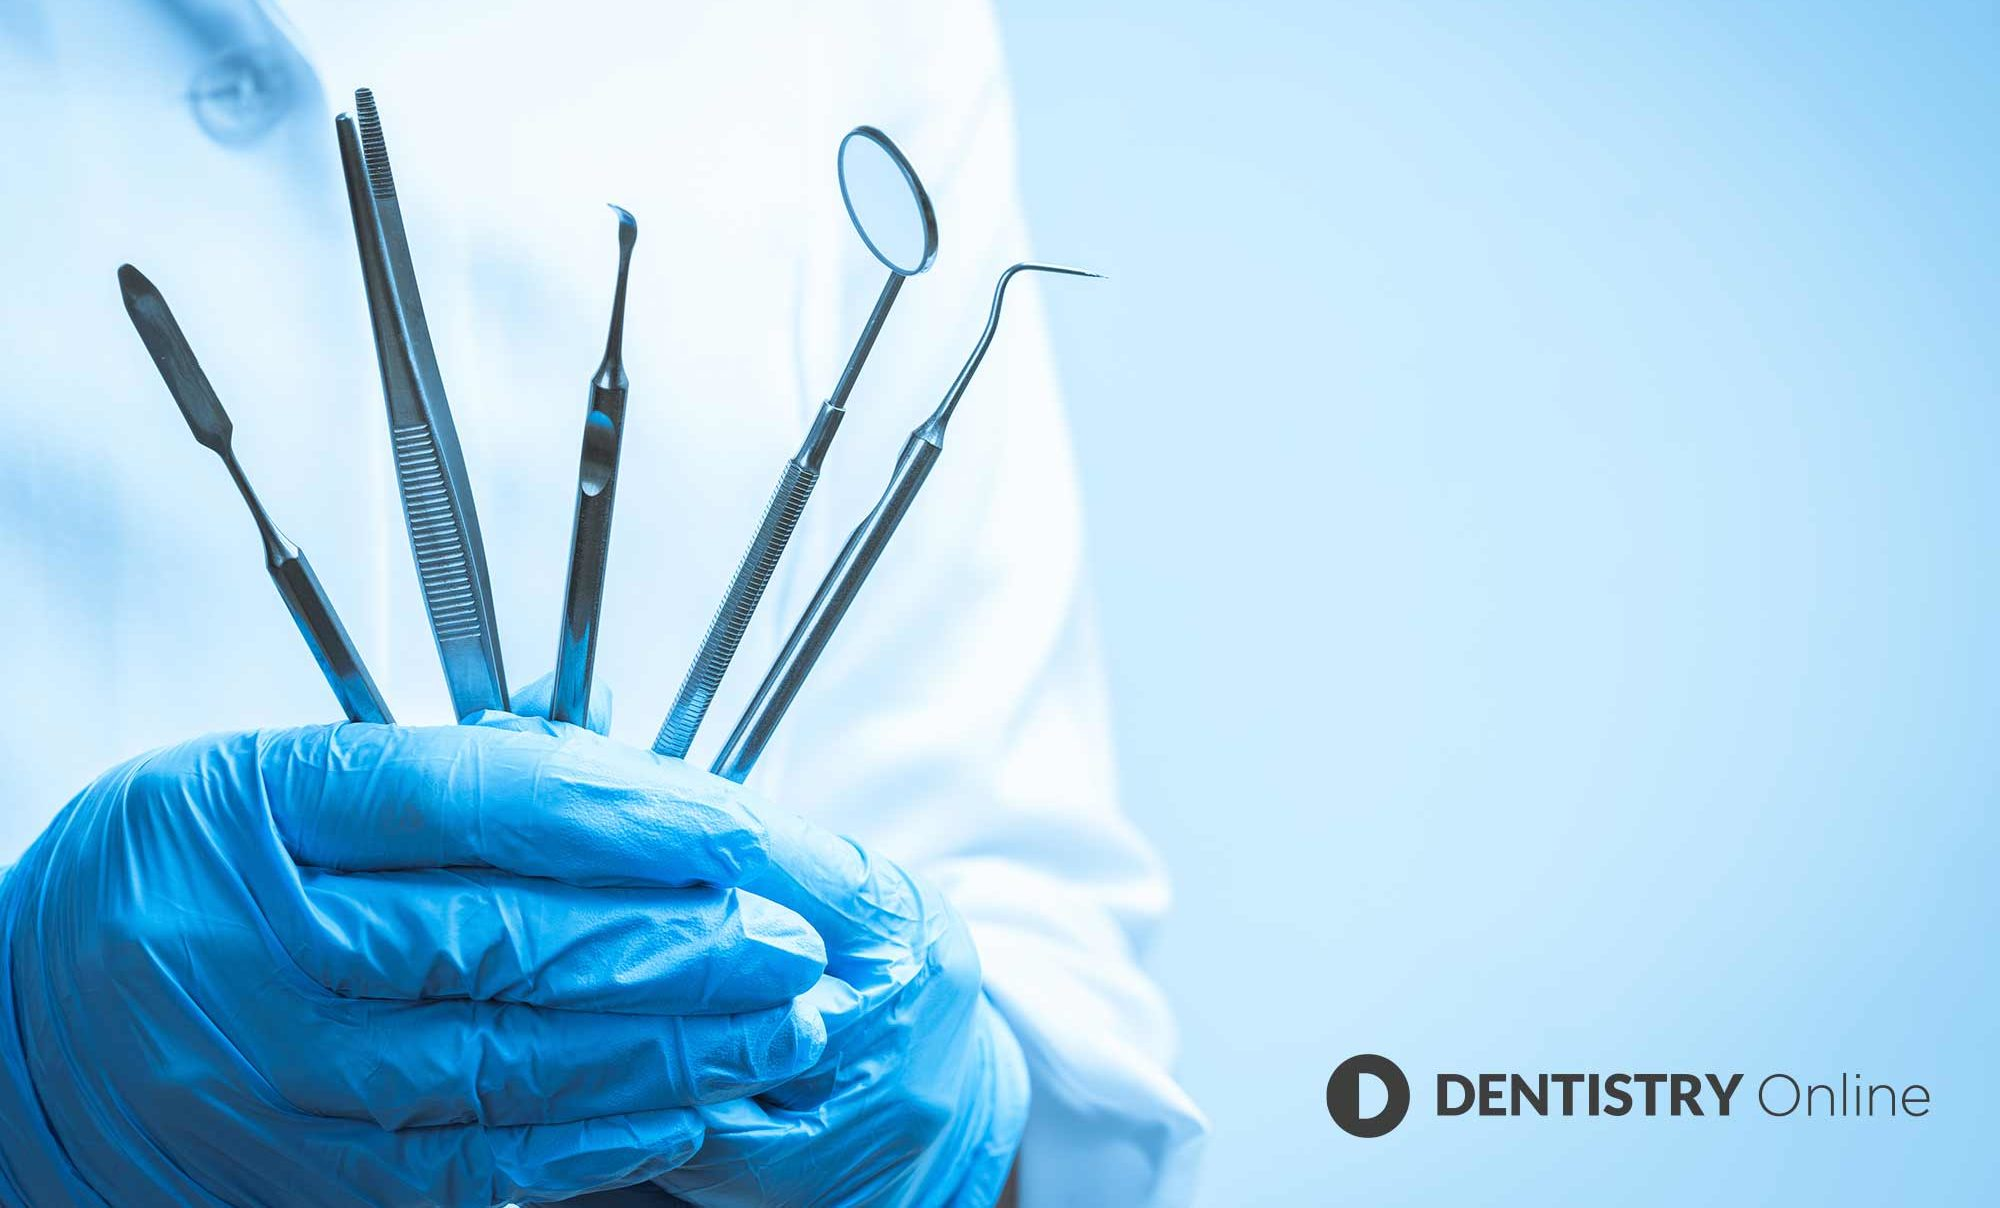 The government has called on NHS England to set out the next steps to secure sustainable and efficient dental services